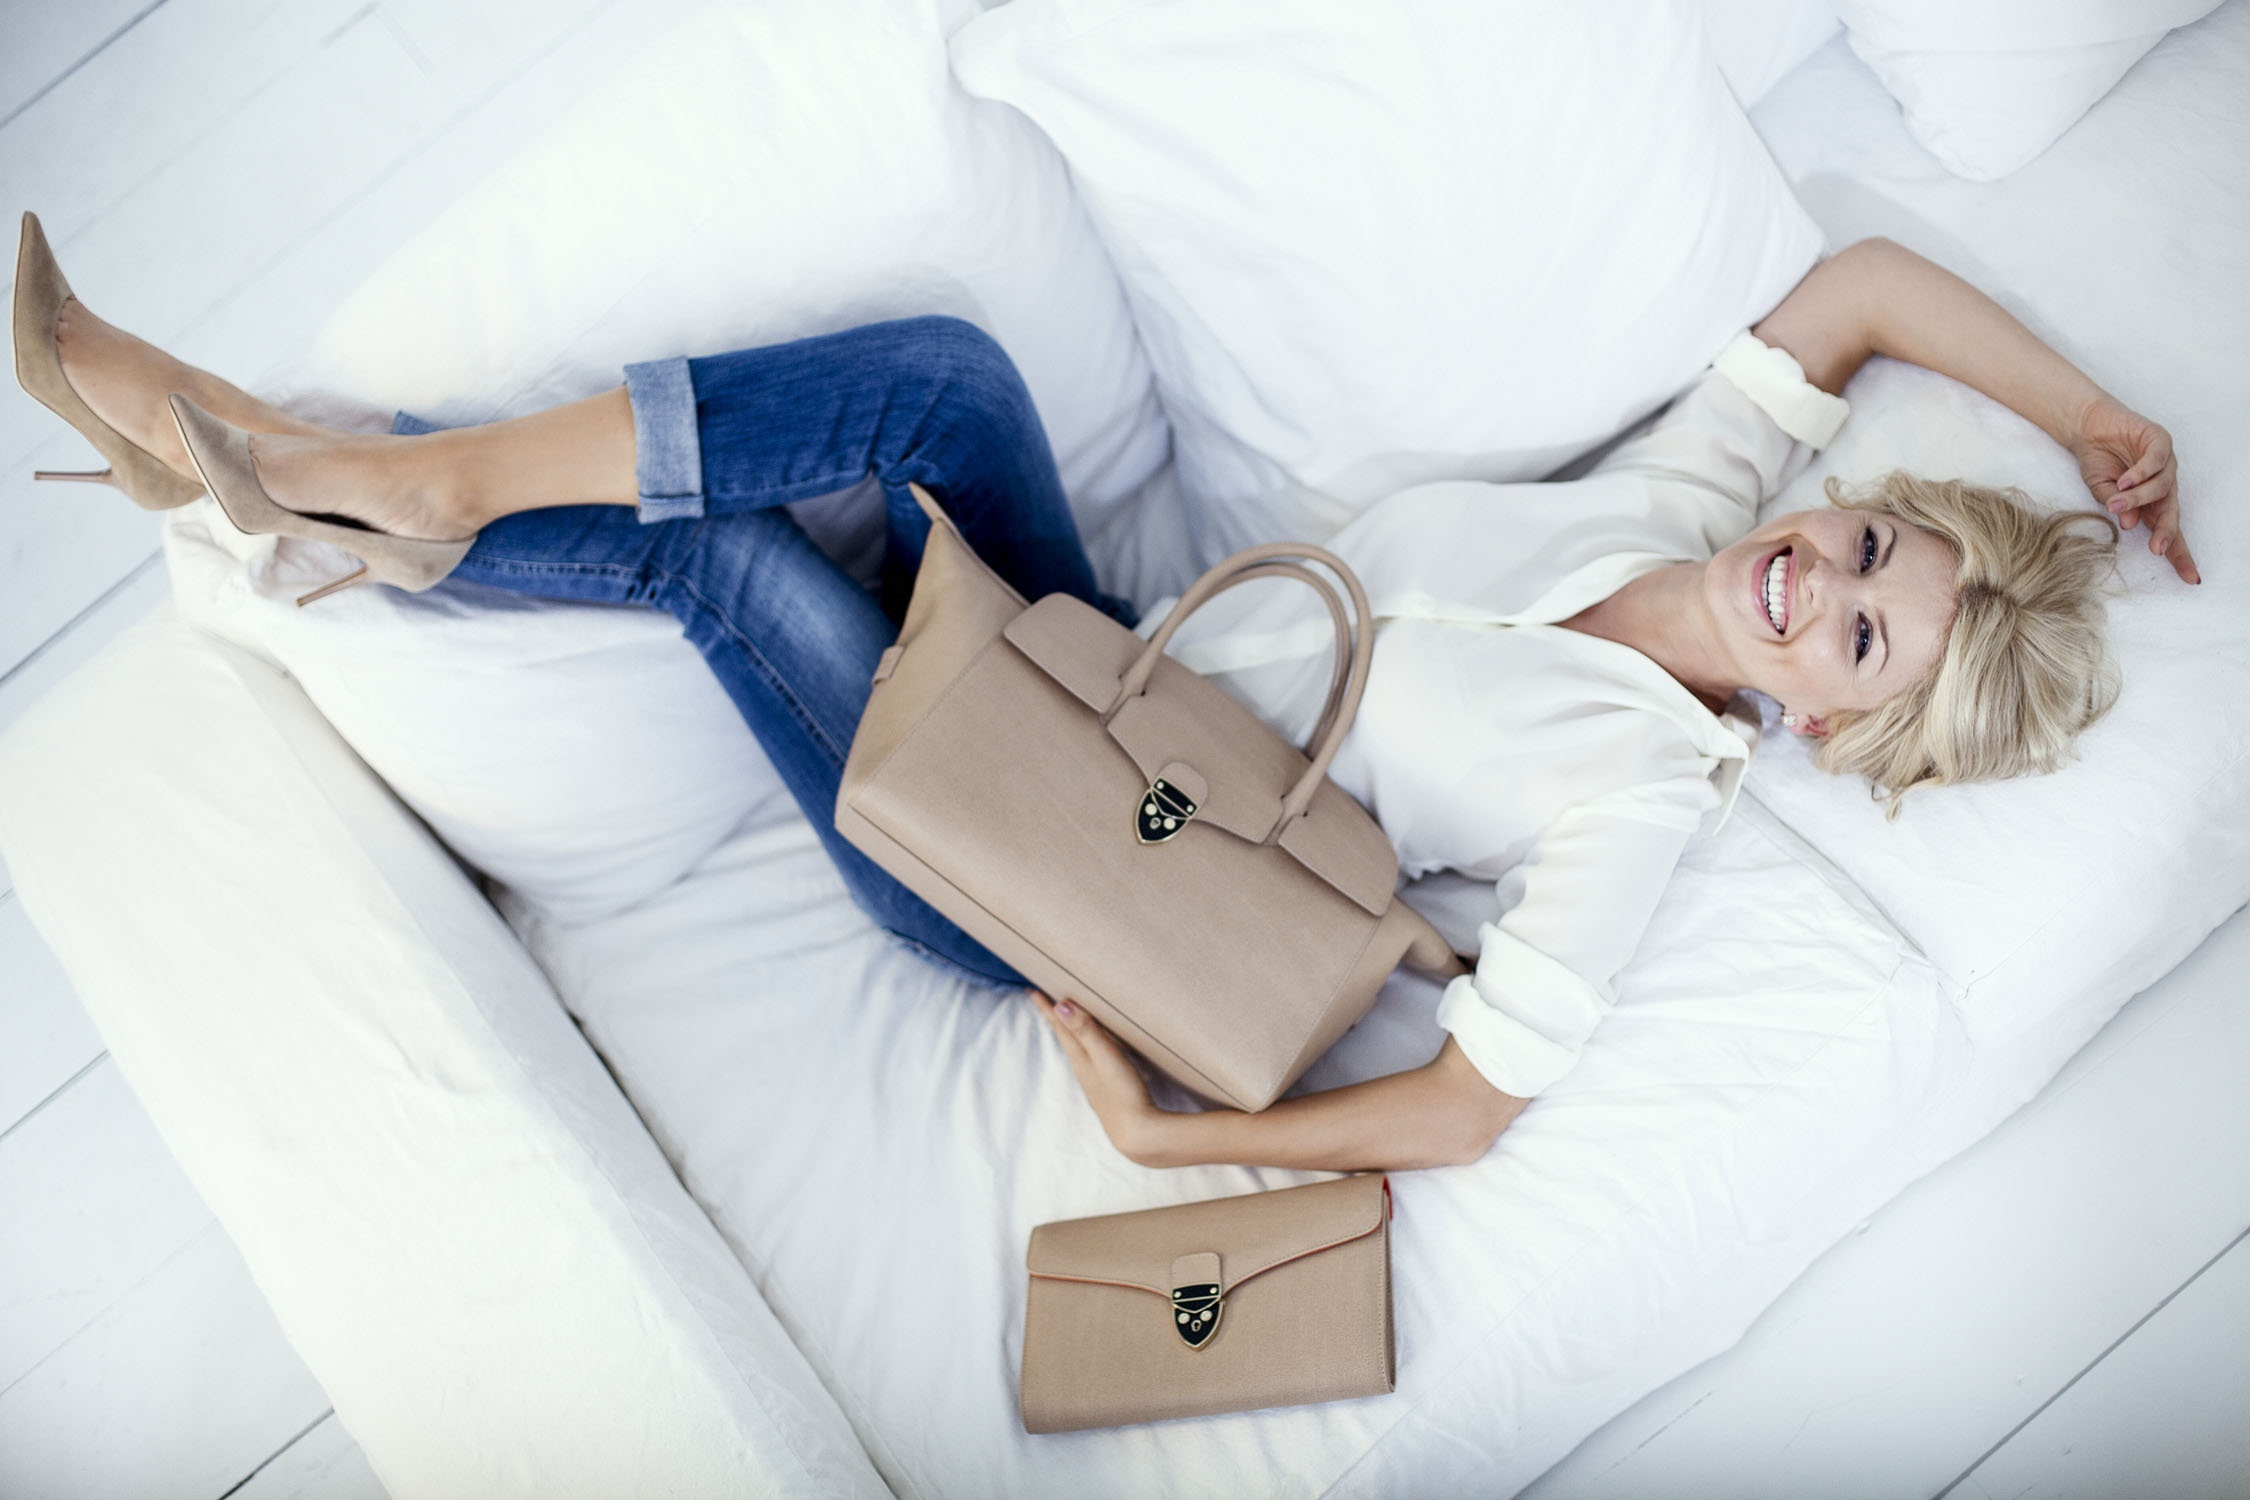 Read more about the article BRANDS: LUXURY, ENGLISH QUALITY AND STYLE